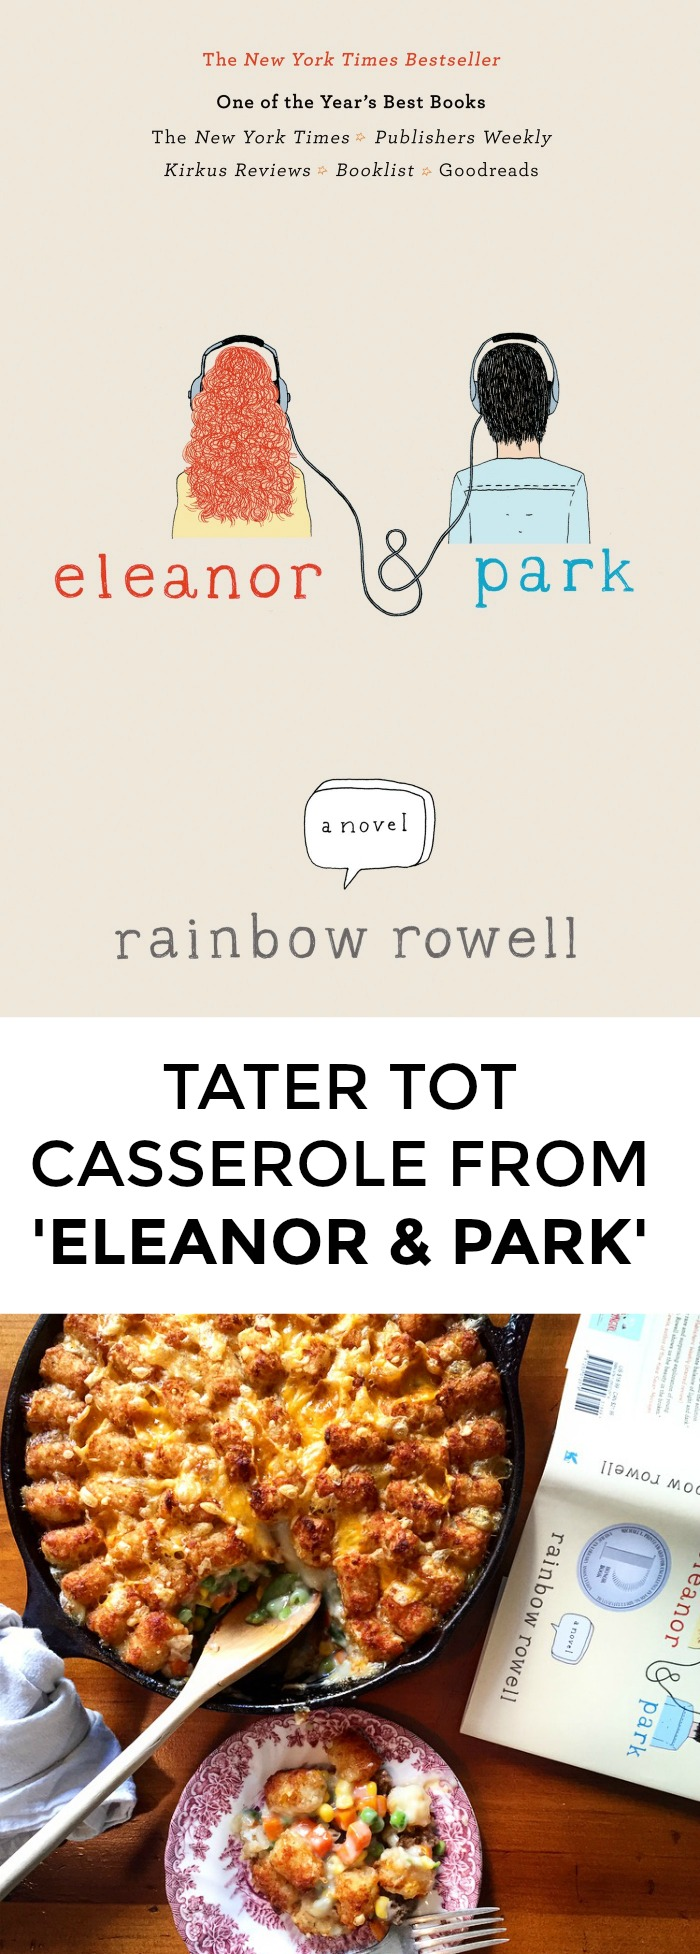 Looking for a recipe from Eleanor & Park? Want to cook something to honor your love for Rainbow Rowell? Click through for a great recipe from this awesome YA novel!